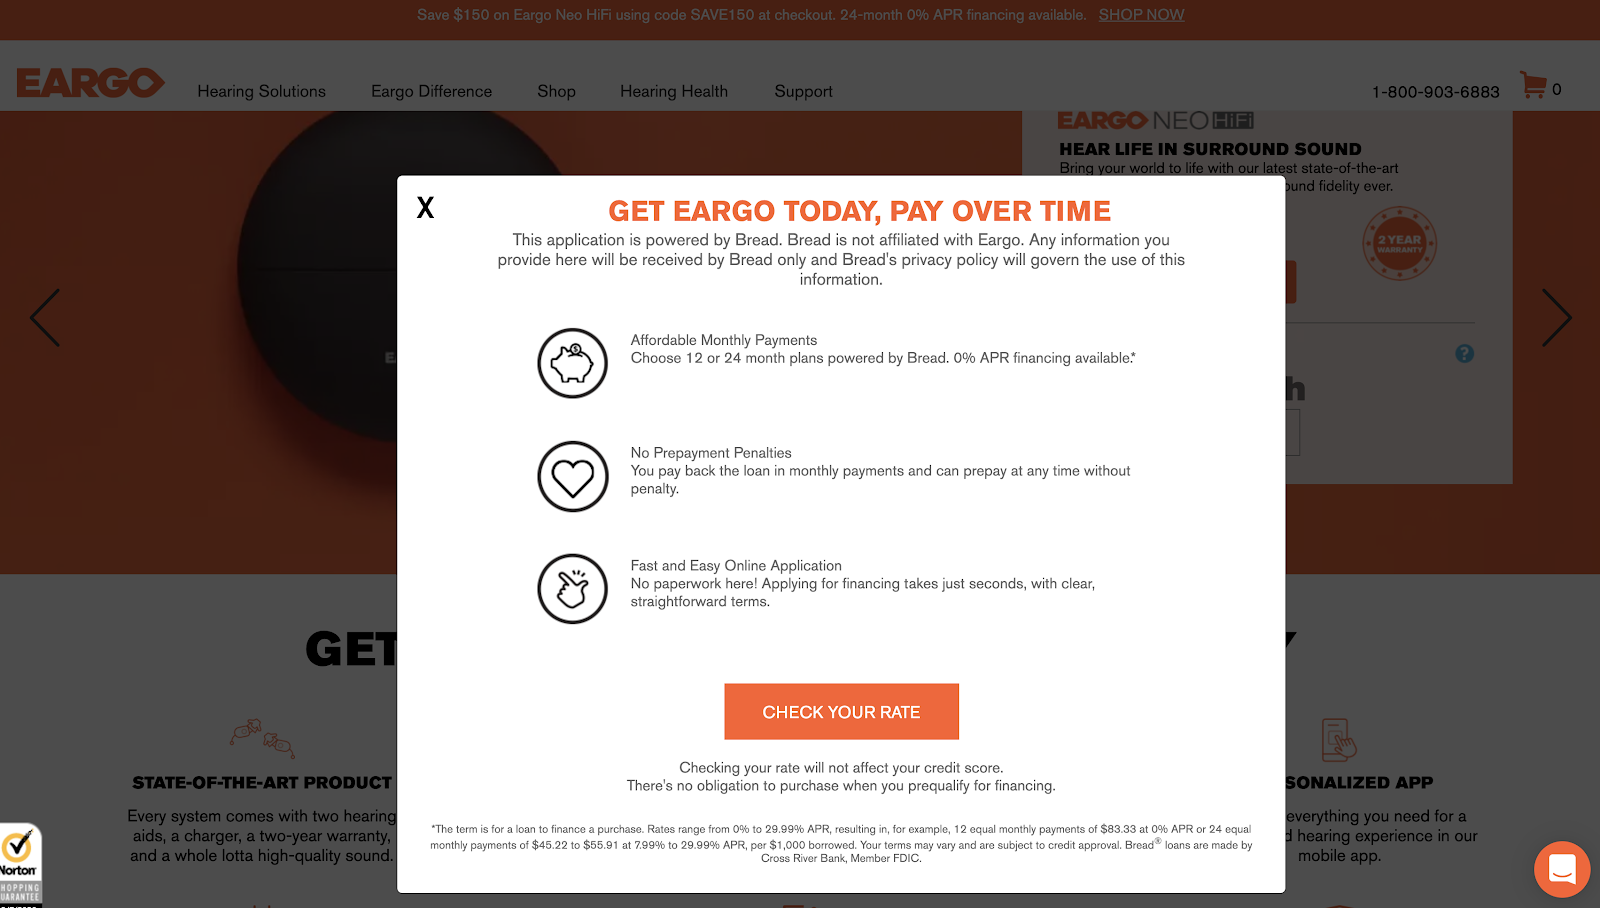 Eargo Buy Now Pay Later Checkout Page